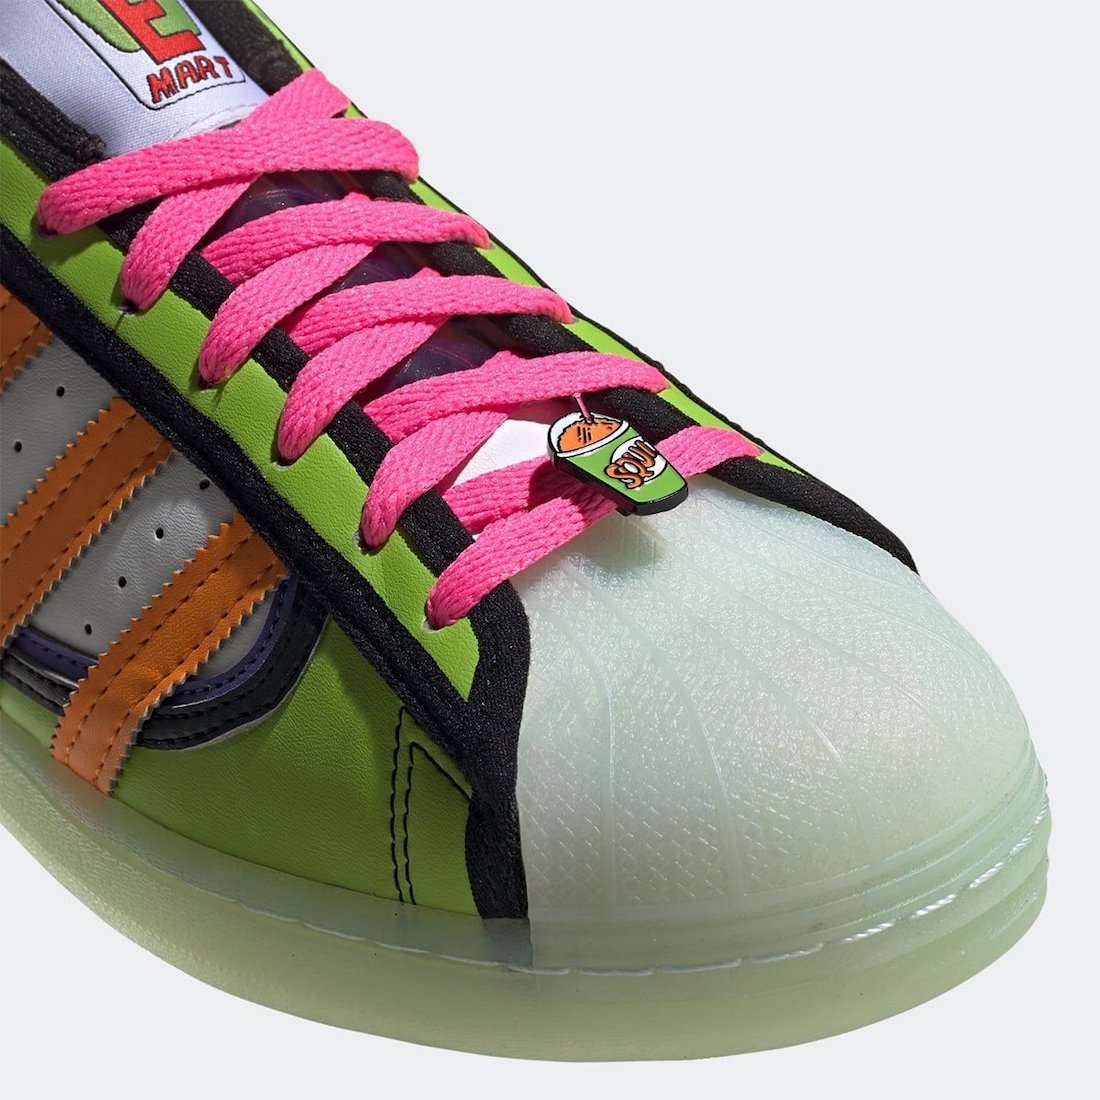 The-Simpsons-adidas-Superstar-Squishee-H05789-Release-Date-6